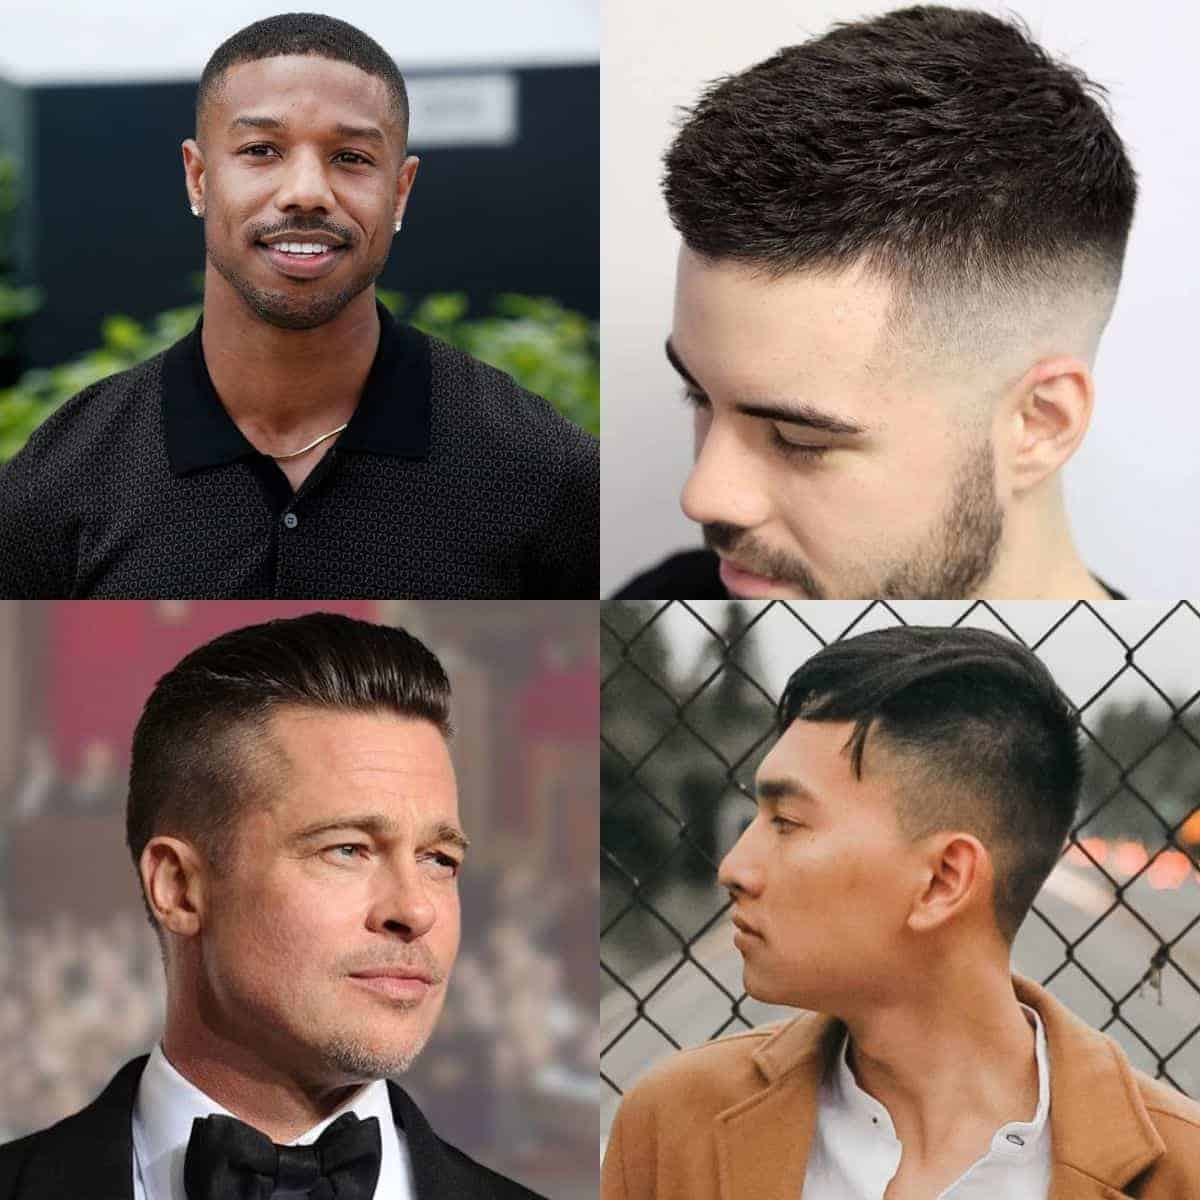 Four examples of different men's short haircuts.